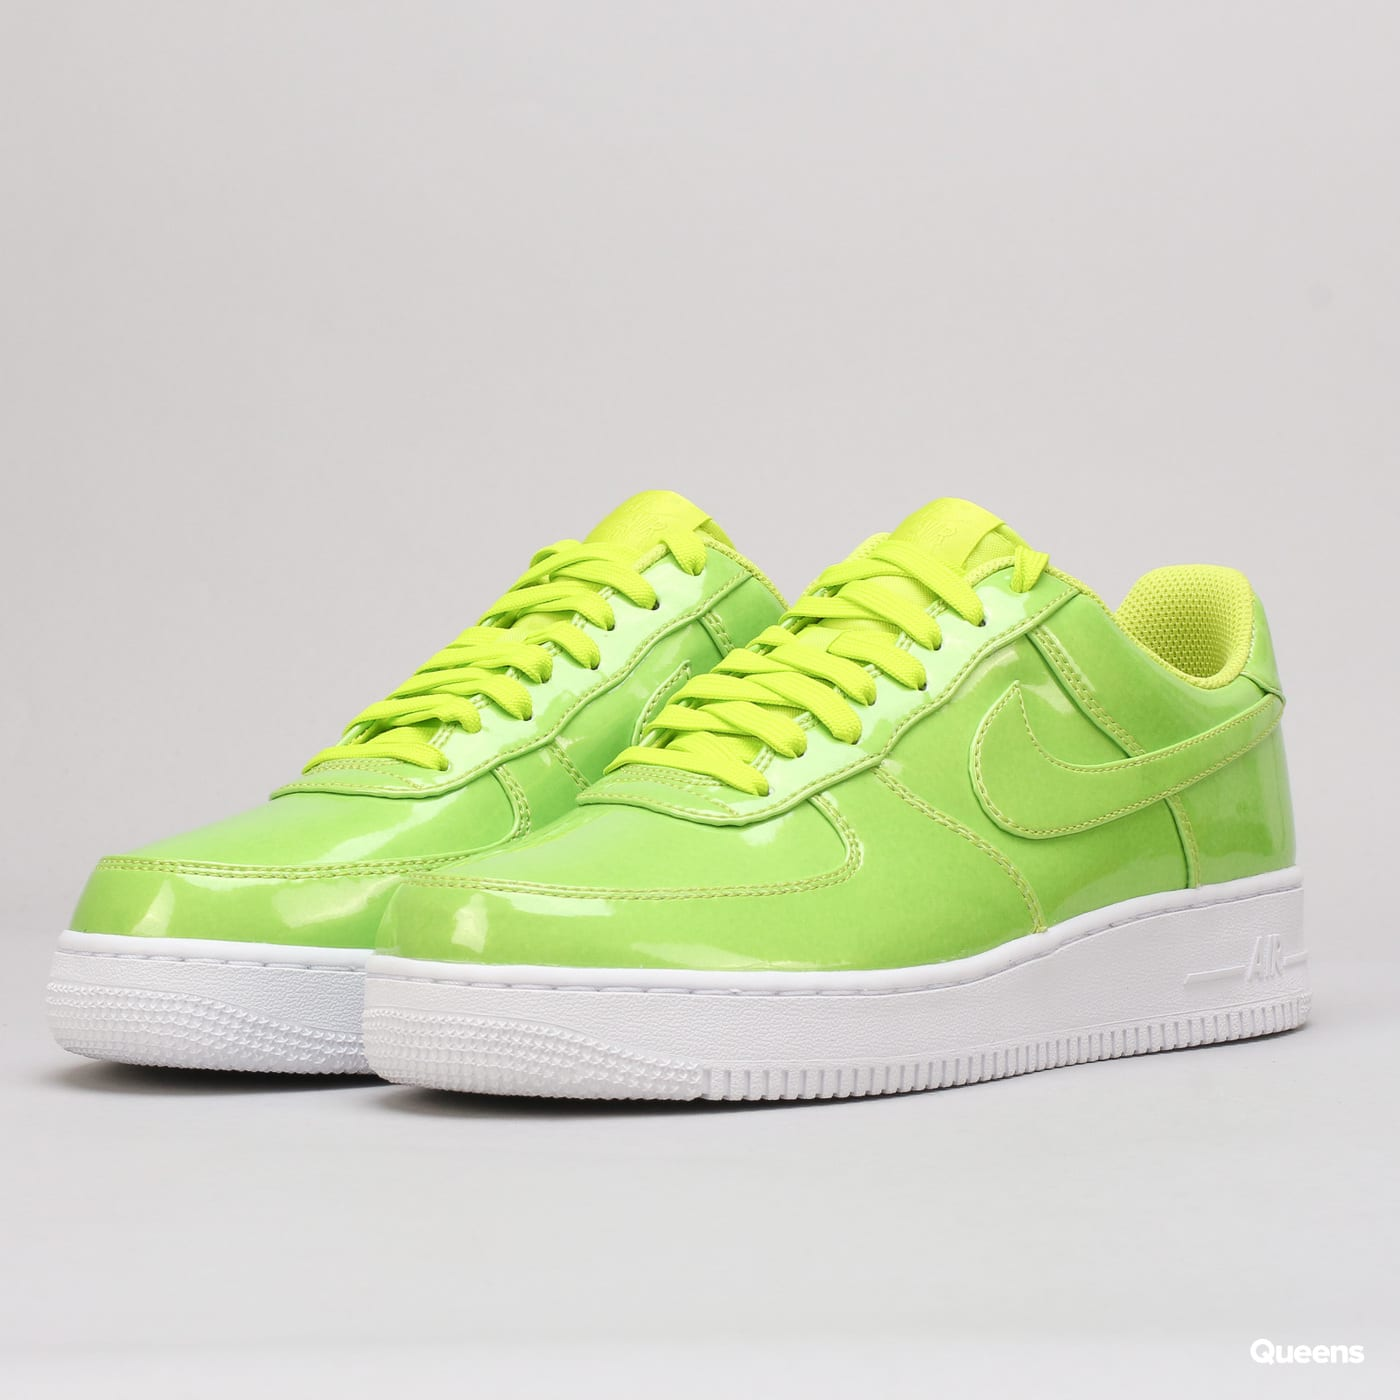 new product f63d4 79b62 Sneakers Nike Air Force 1  07 LV8 UV (AJ9505-300)– Queens 💚